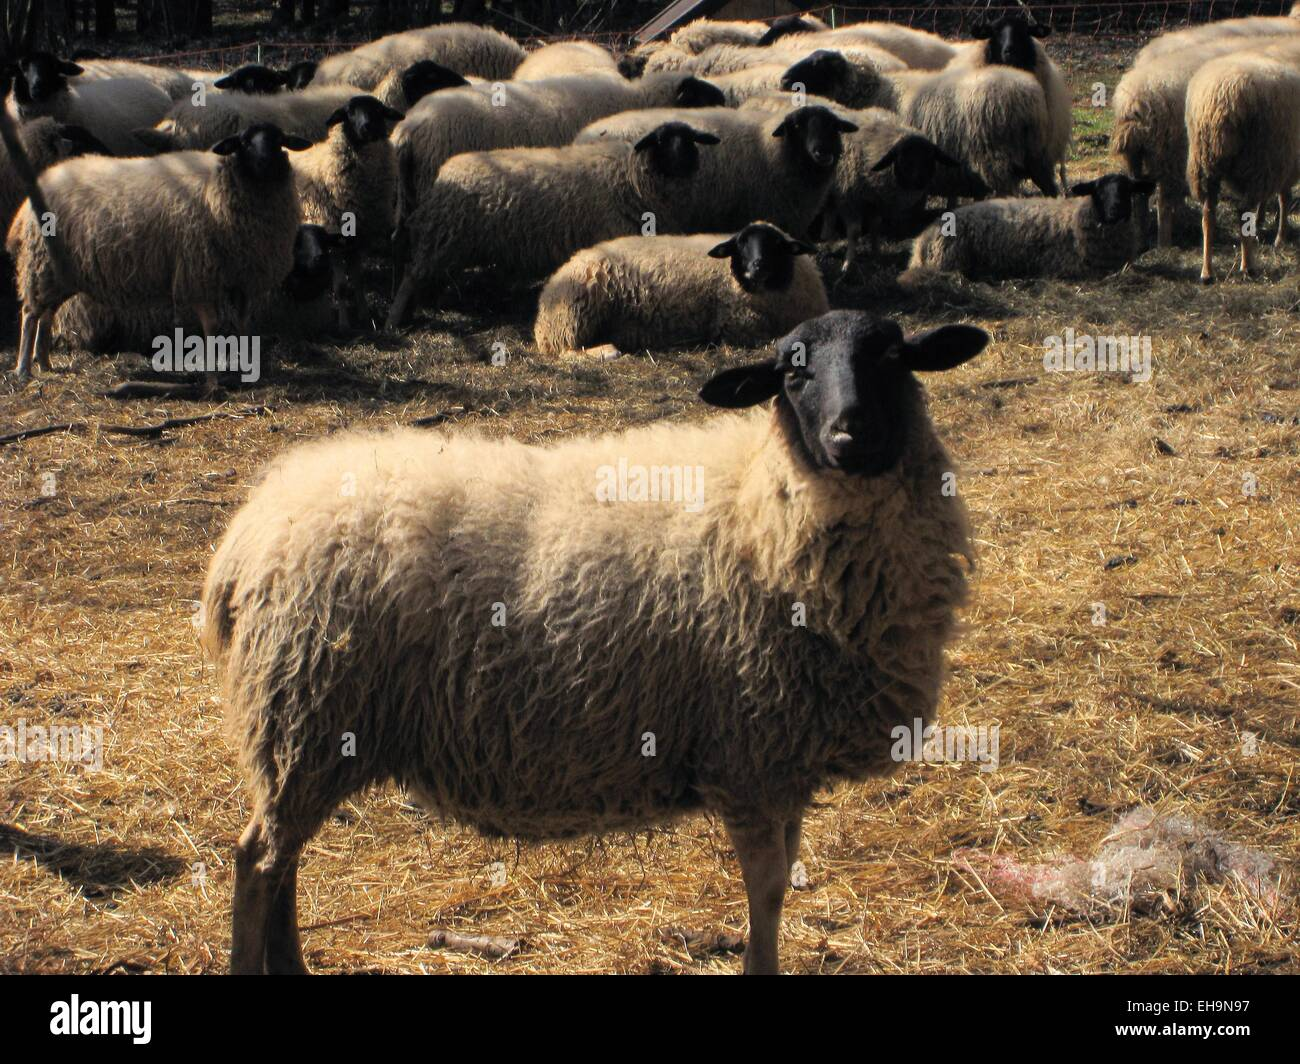 Rhoen sheep with black head, Germany - Stock Image